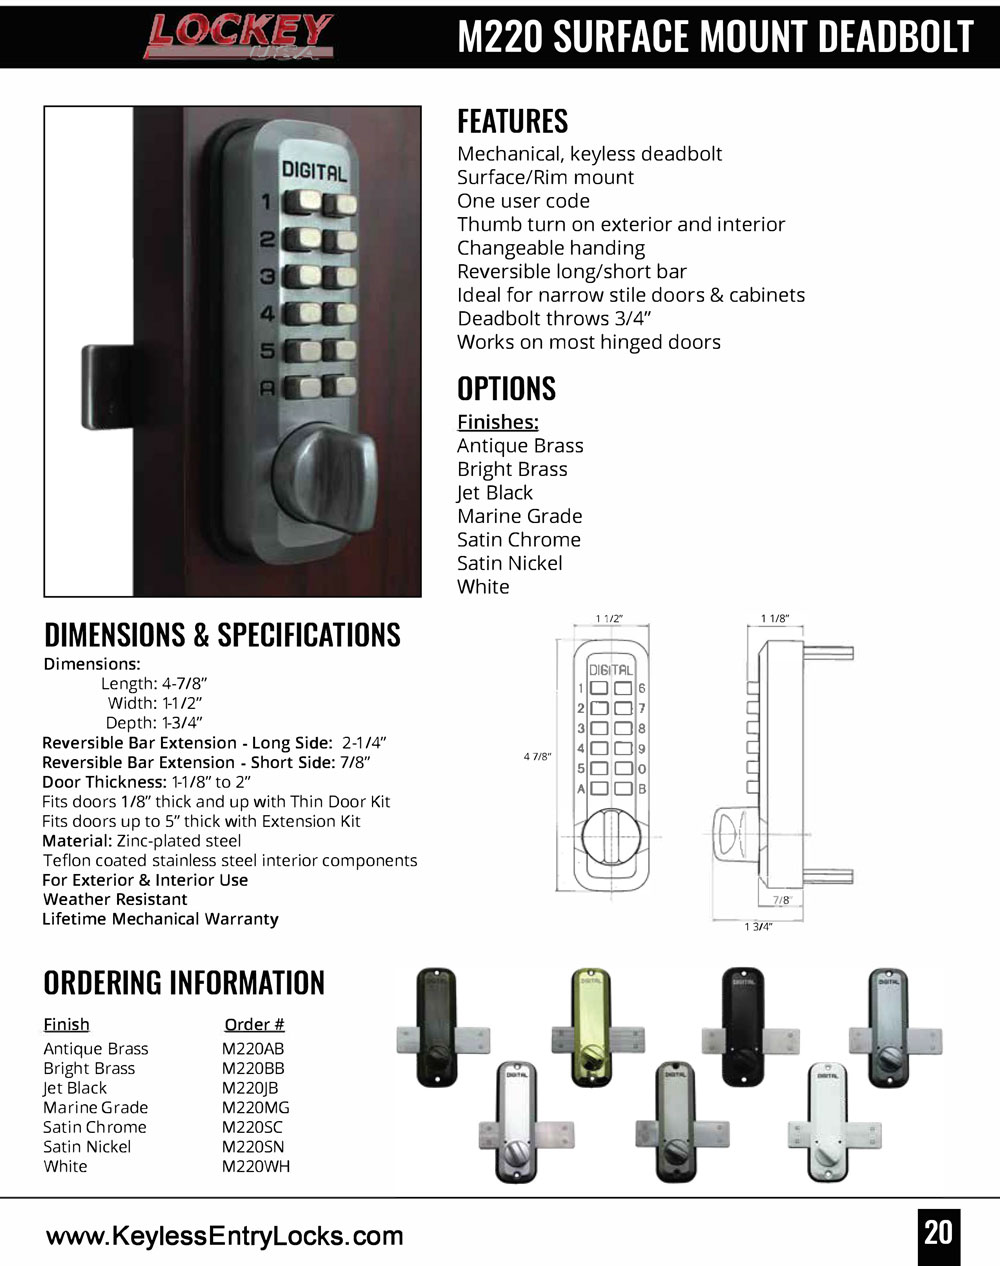 Lockey M220 Home Slide-Bar Deadbolt Keypad Lock